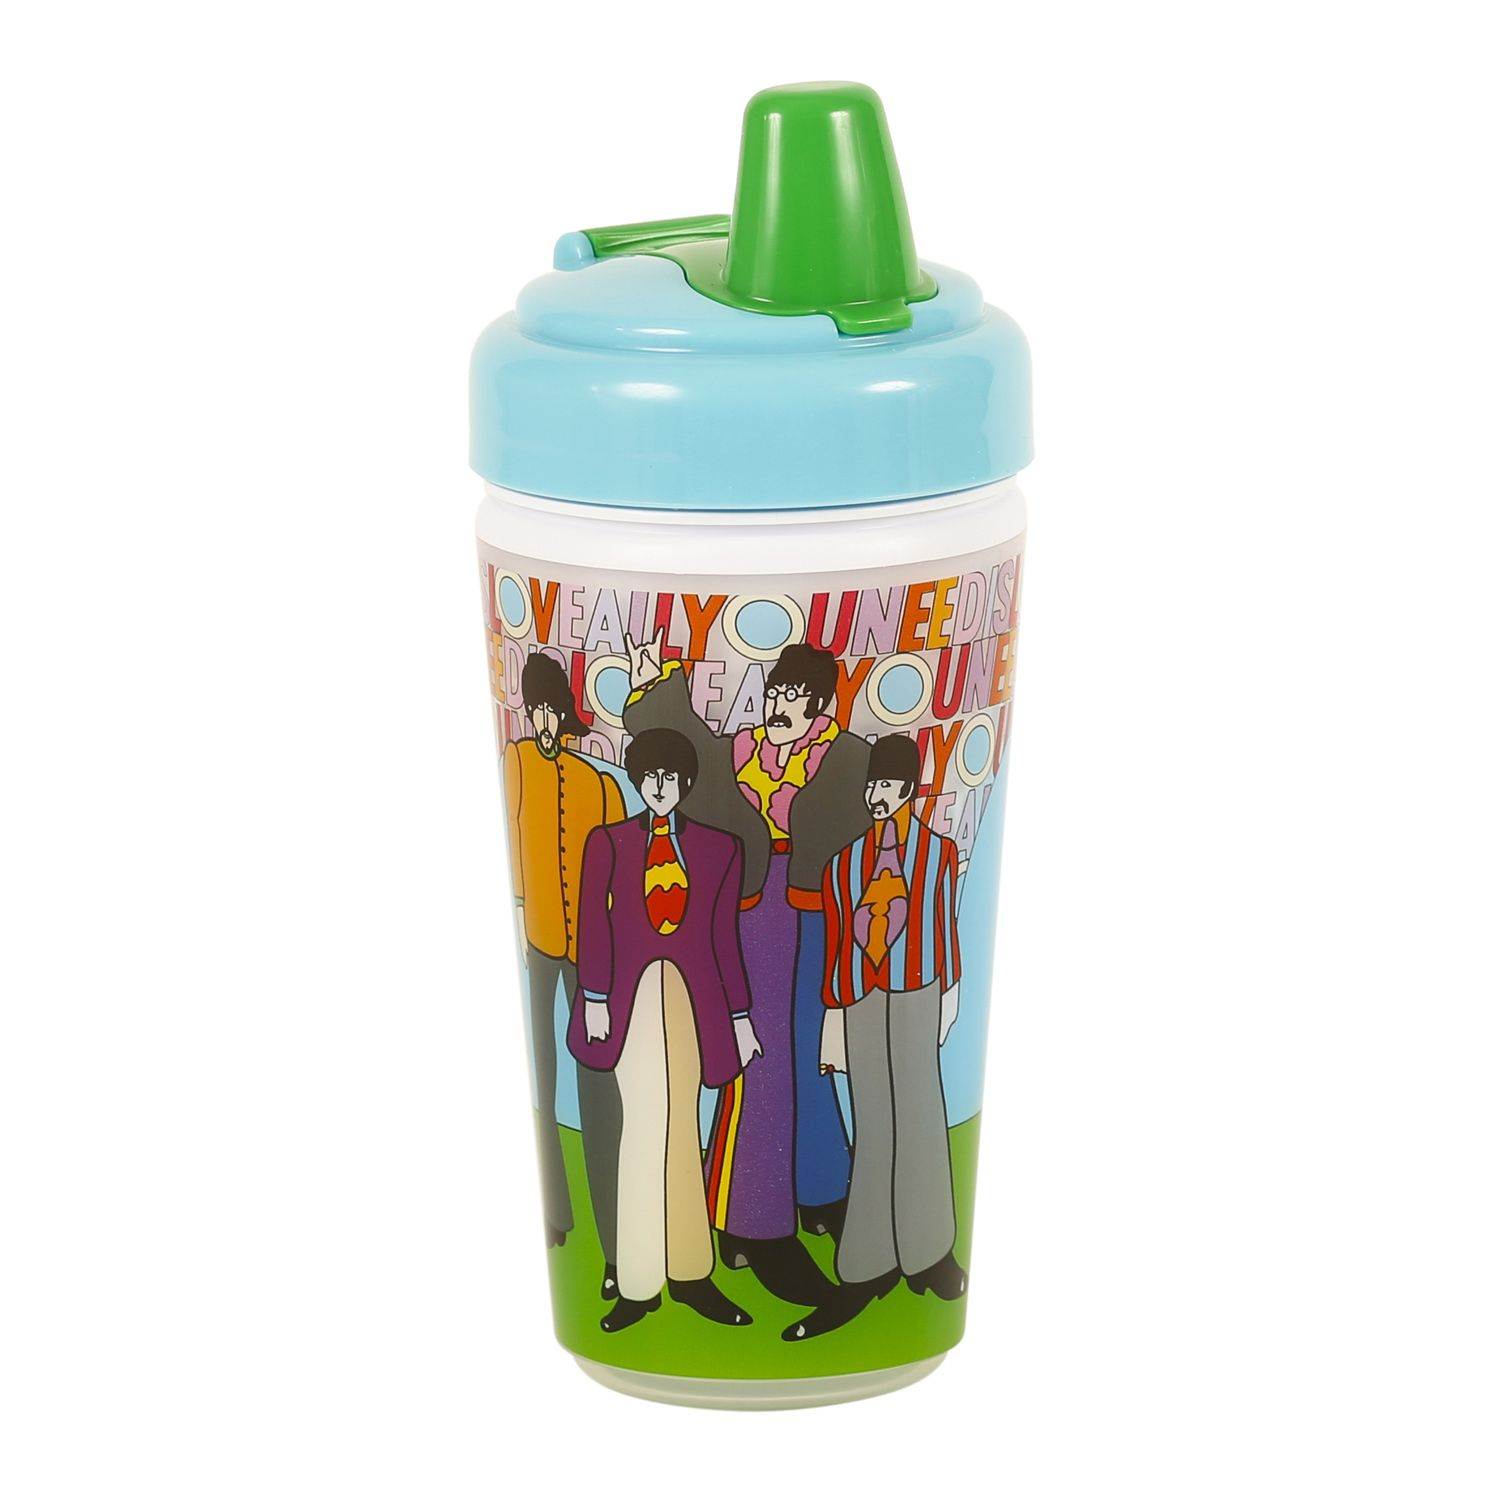 The Beatles All You Need Is Love Sippy Cup 10oz In 2020 Celebrity Baby Names New Baby Products Grumpy Baby